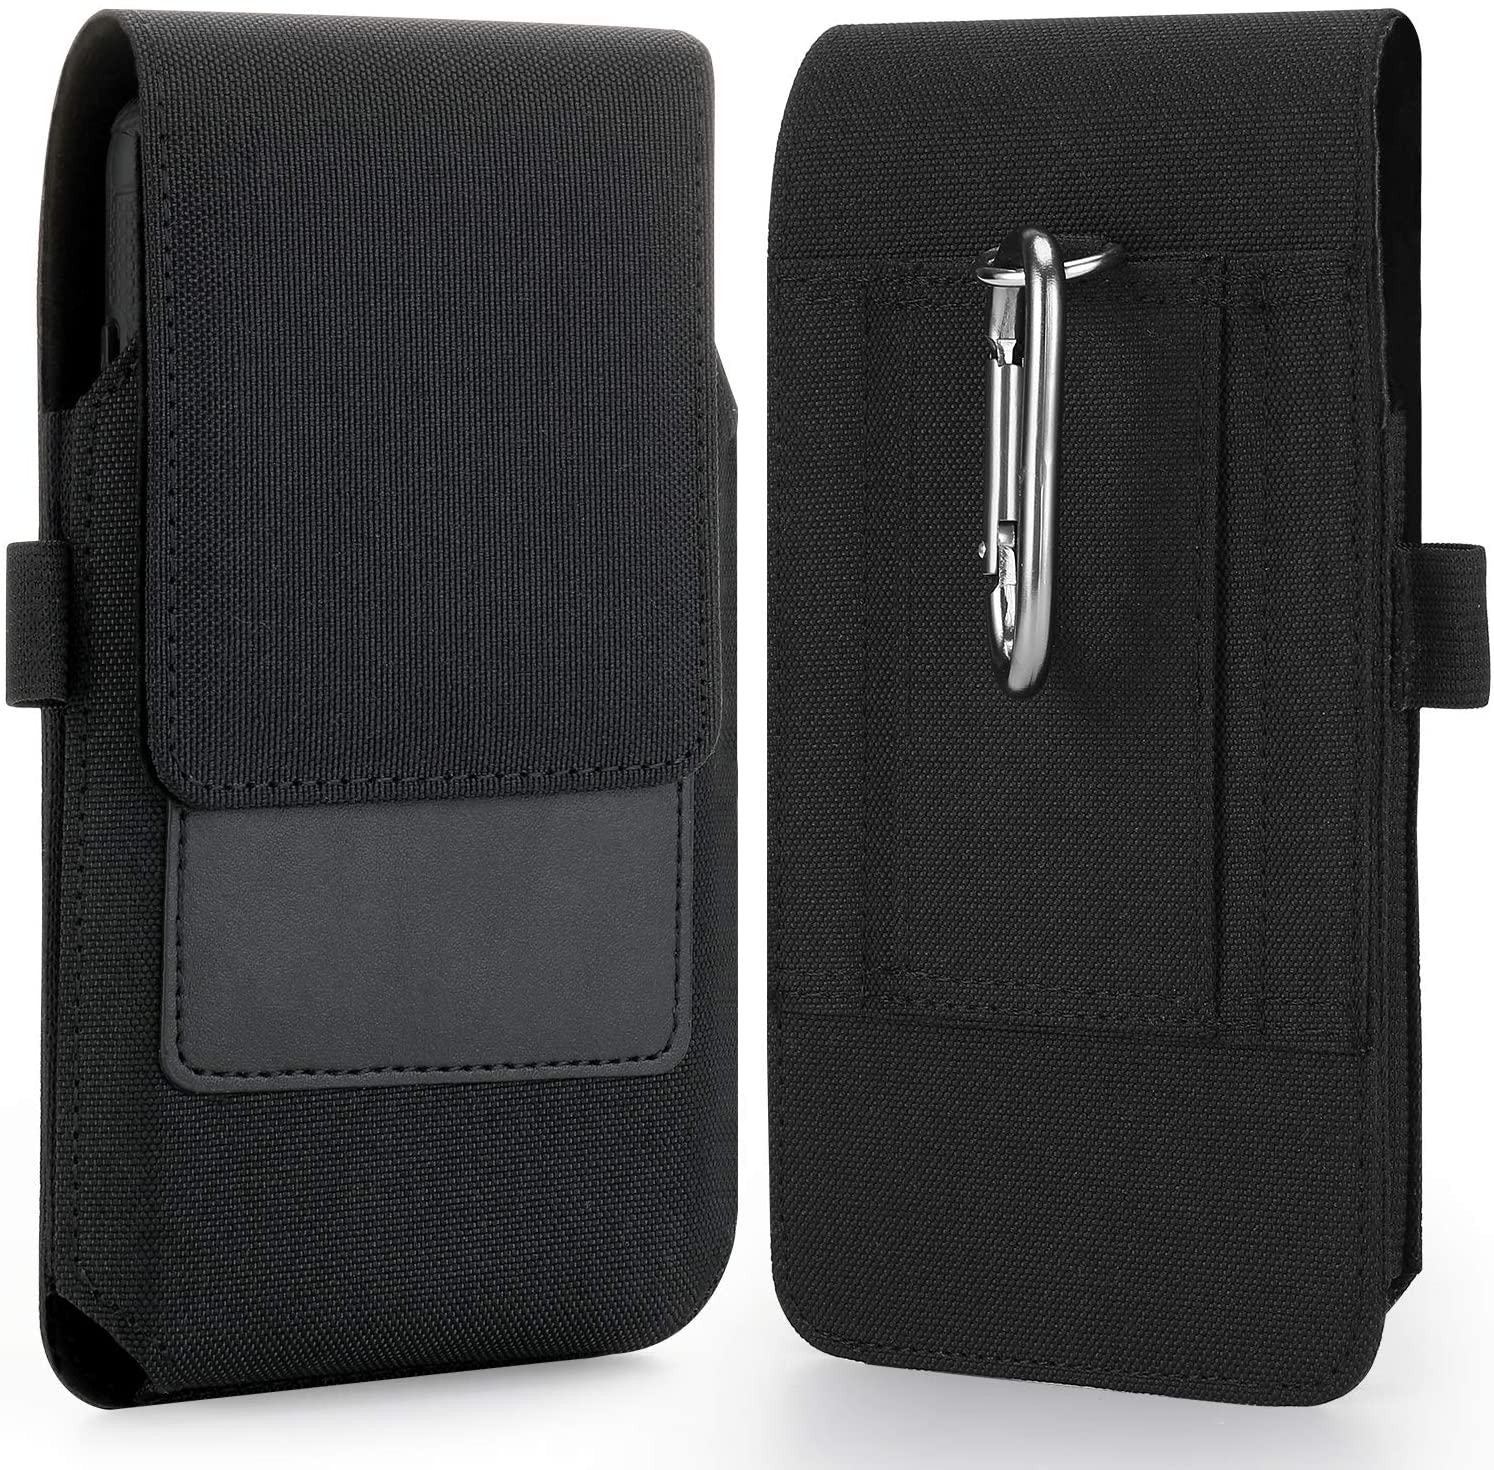 Mopaclle Galaxy A12 Nacho Holster Case, Nylon Belt Clip Case Cell Phone Pouch Belt Holder for Samsung Galaxy M21 2021, M42, M21,A11 A21 A51 A71, J7J7 V J7 Perx, Note 20 10 9 8 S20 FE S10 Plus - Black